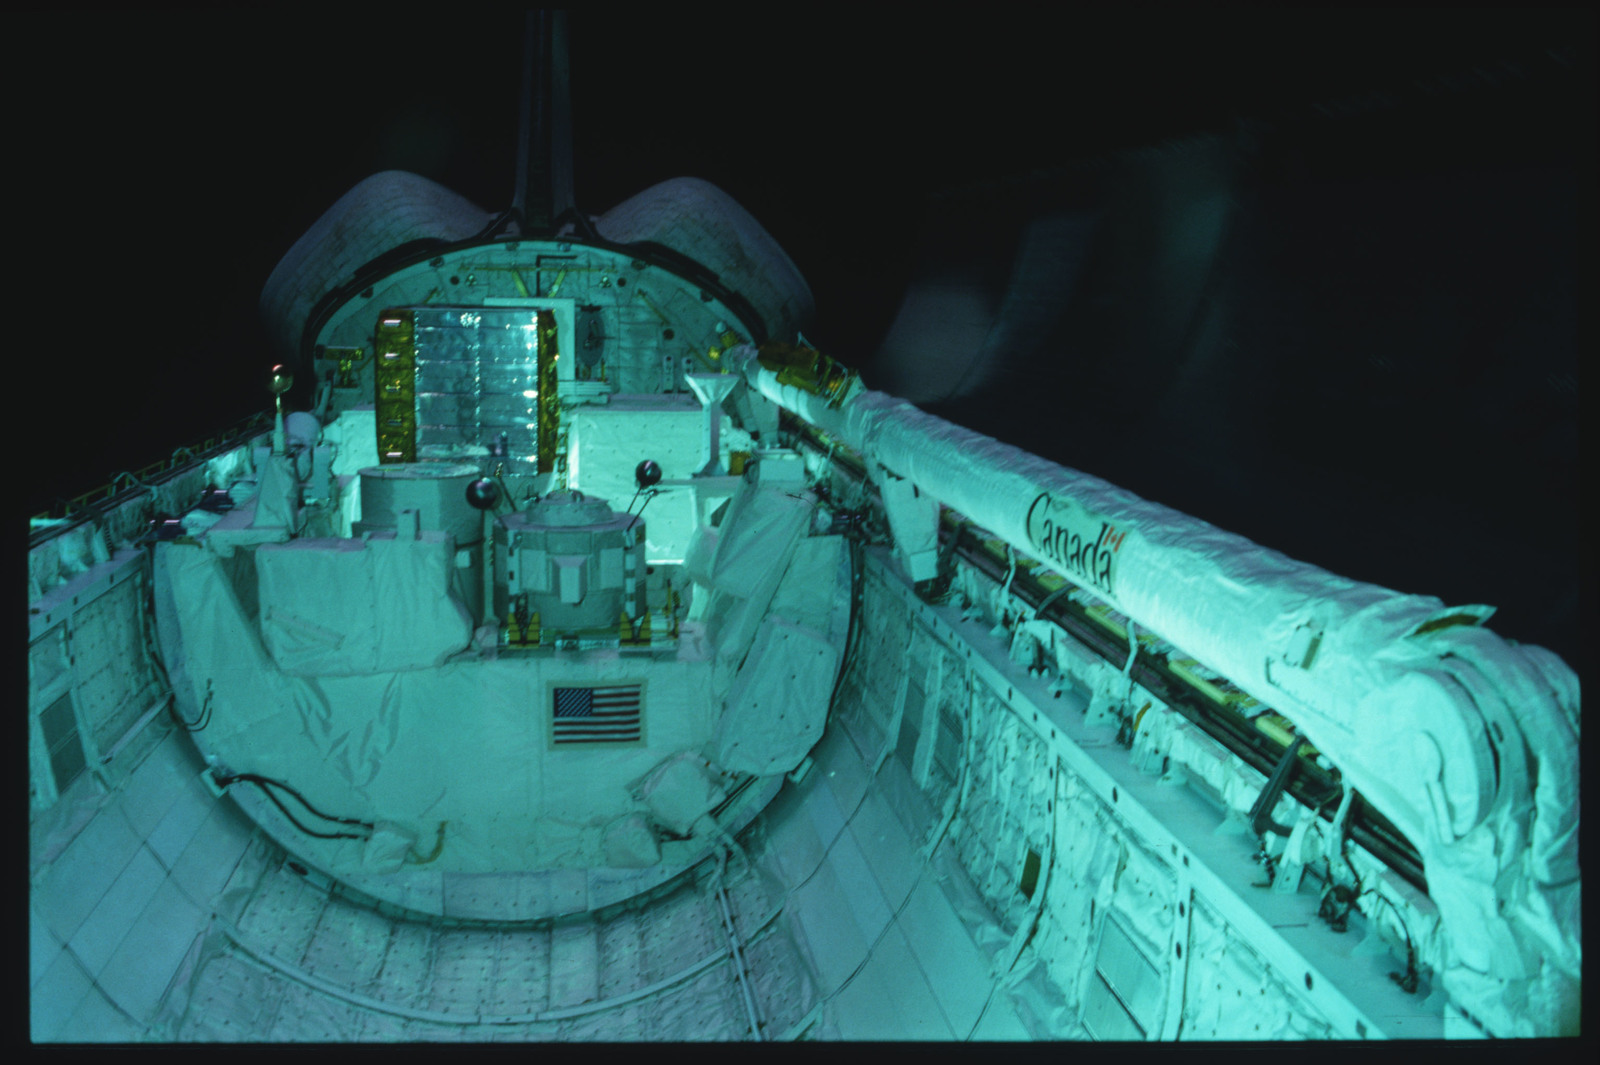 S03-24-202 - STS-003 - Overall views of payload bay taken from the aft flight deck viewing windows